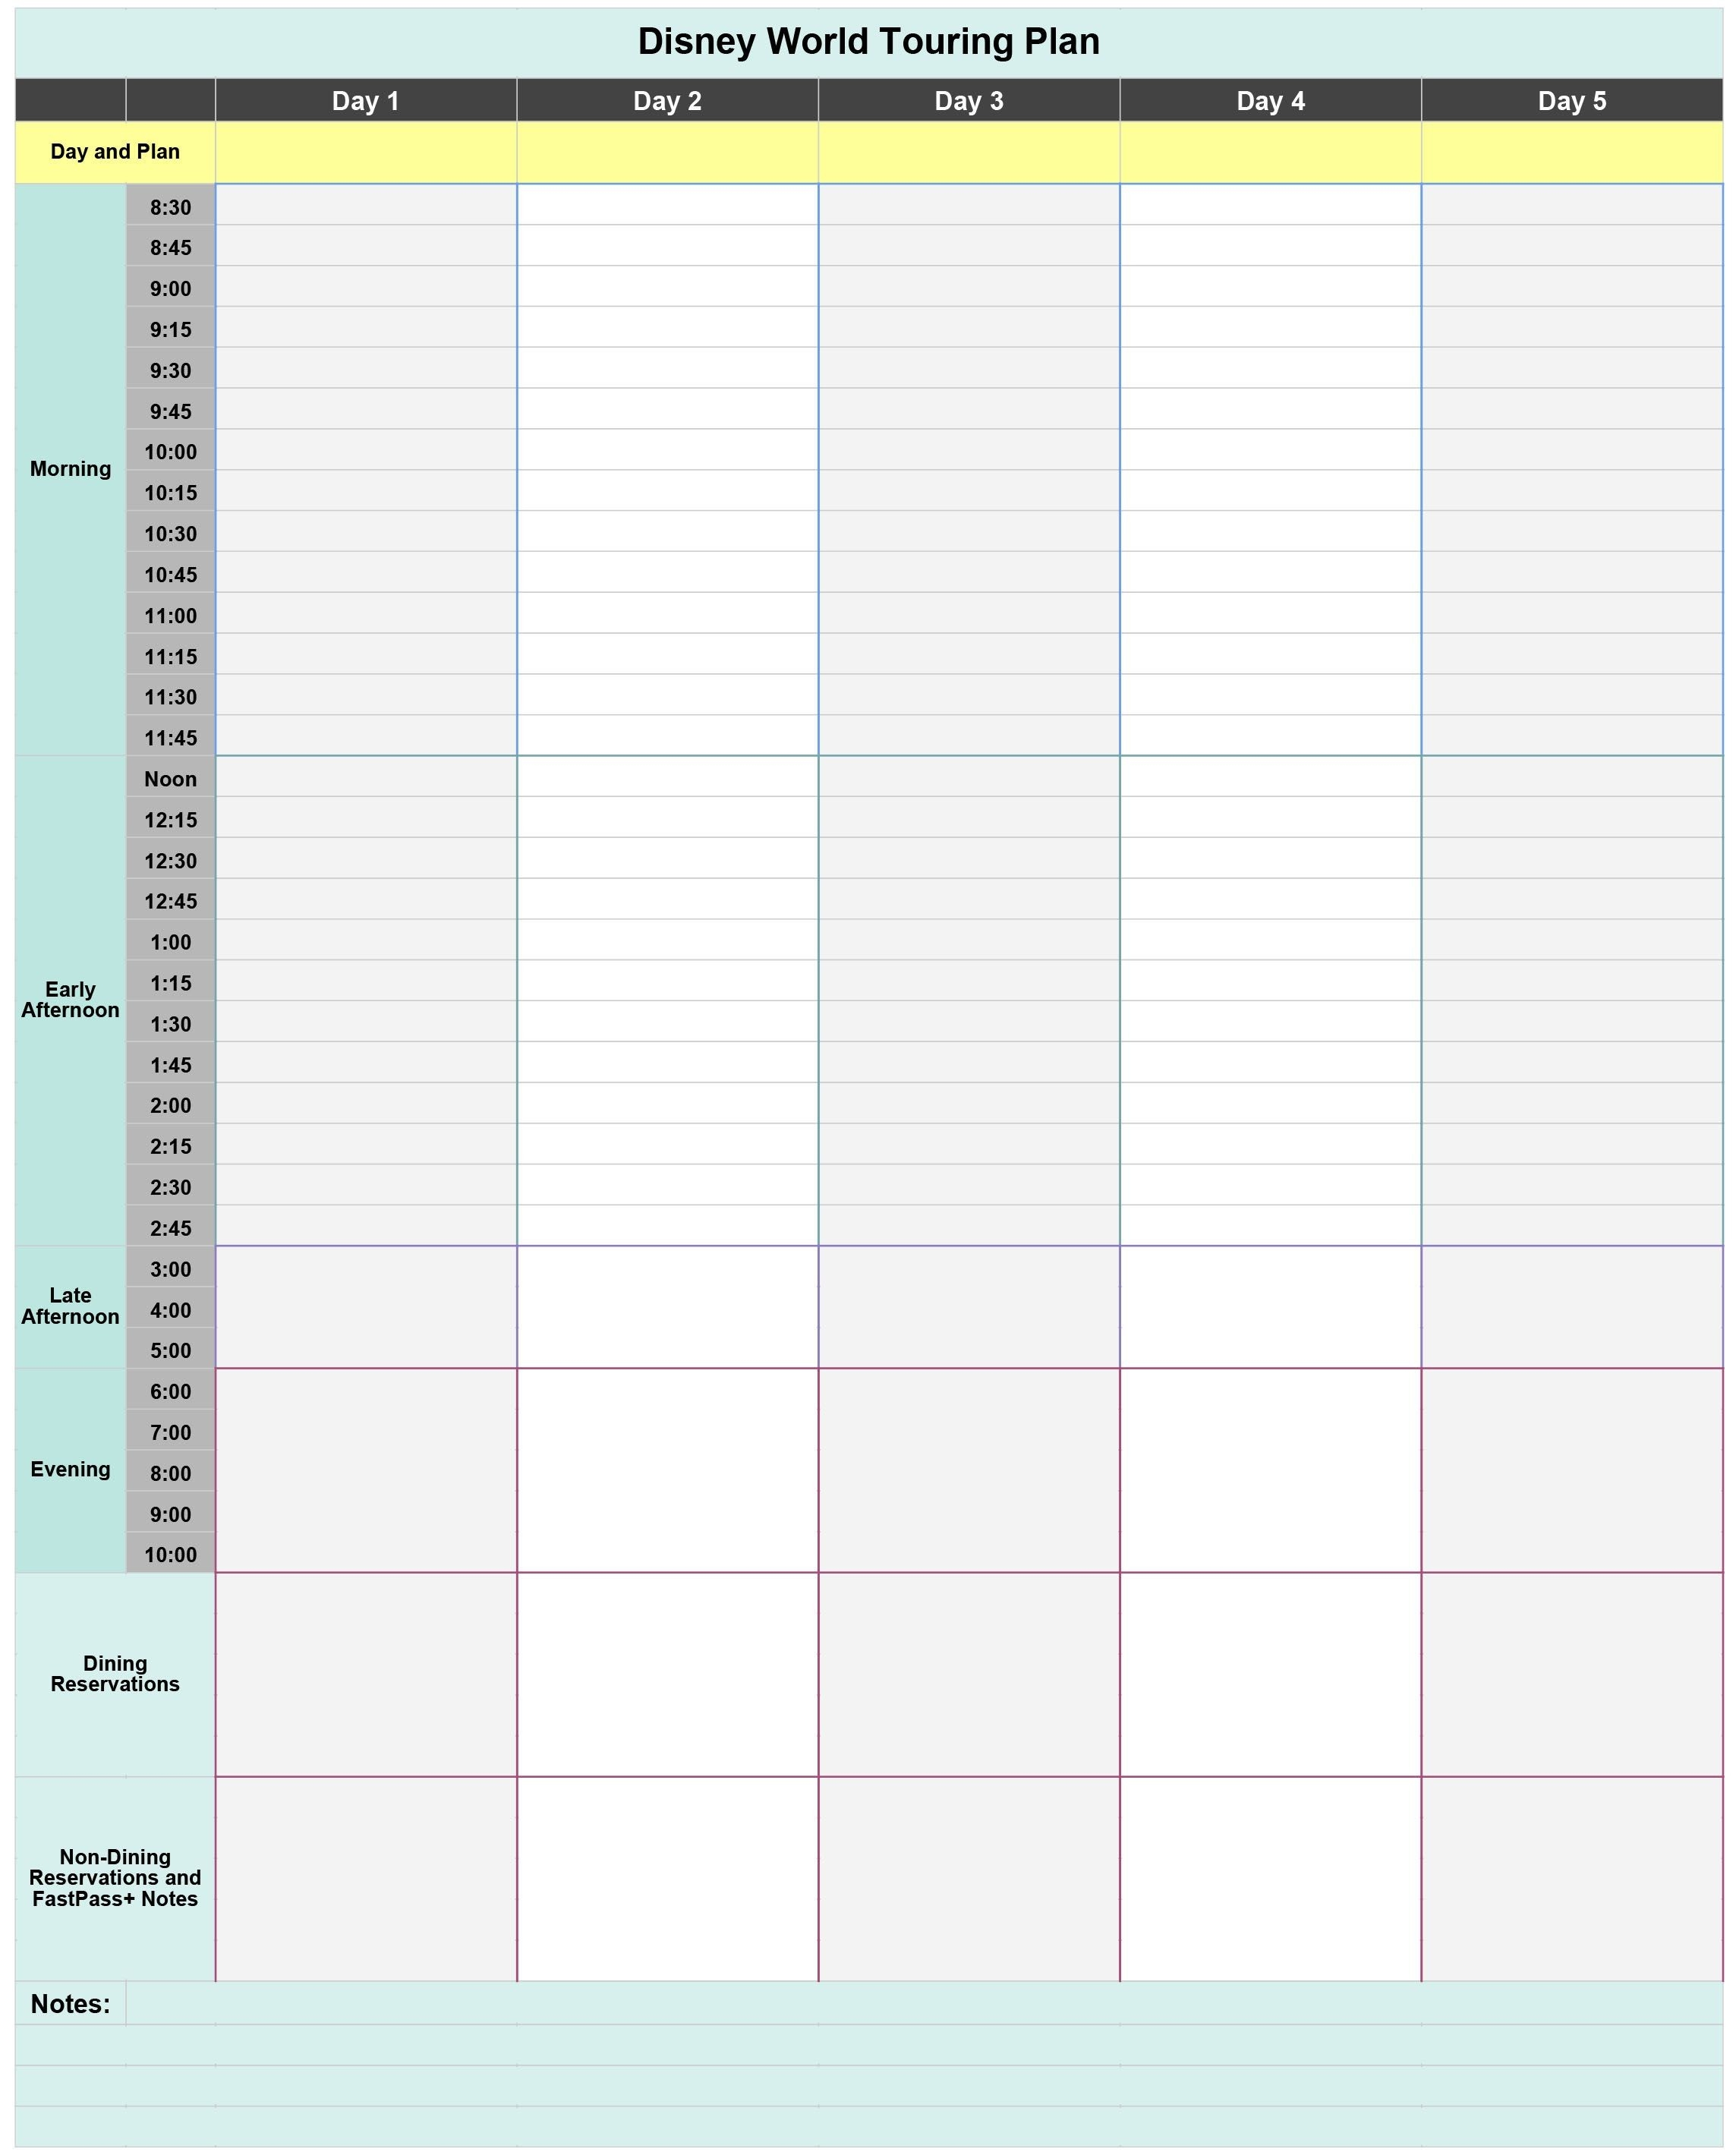 Free Disney World Touring Plan Spreadsheet - Wit & Wander-Disney World Blank Itinerary Template